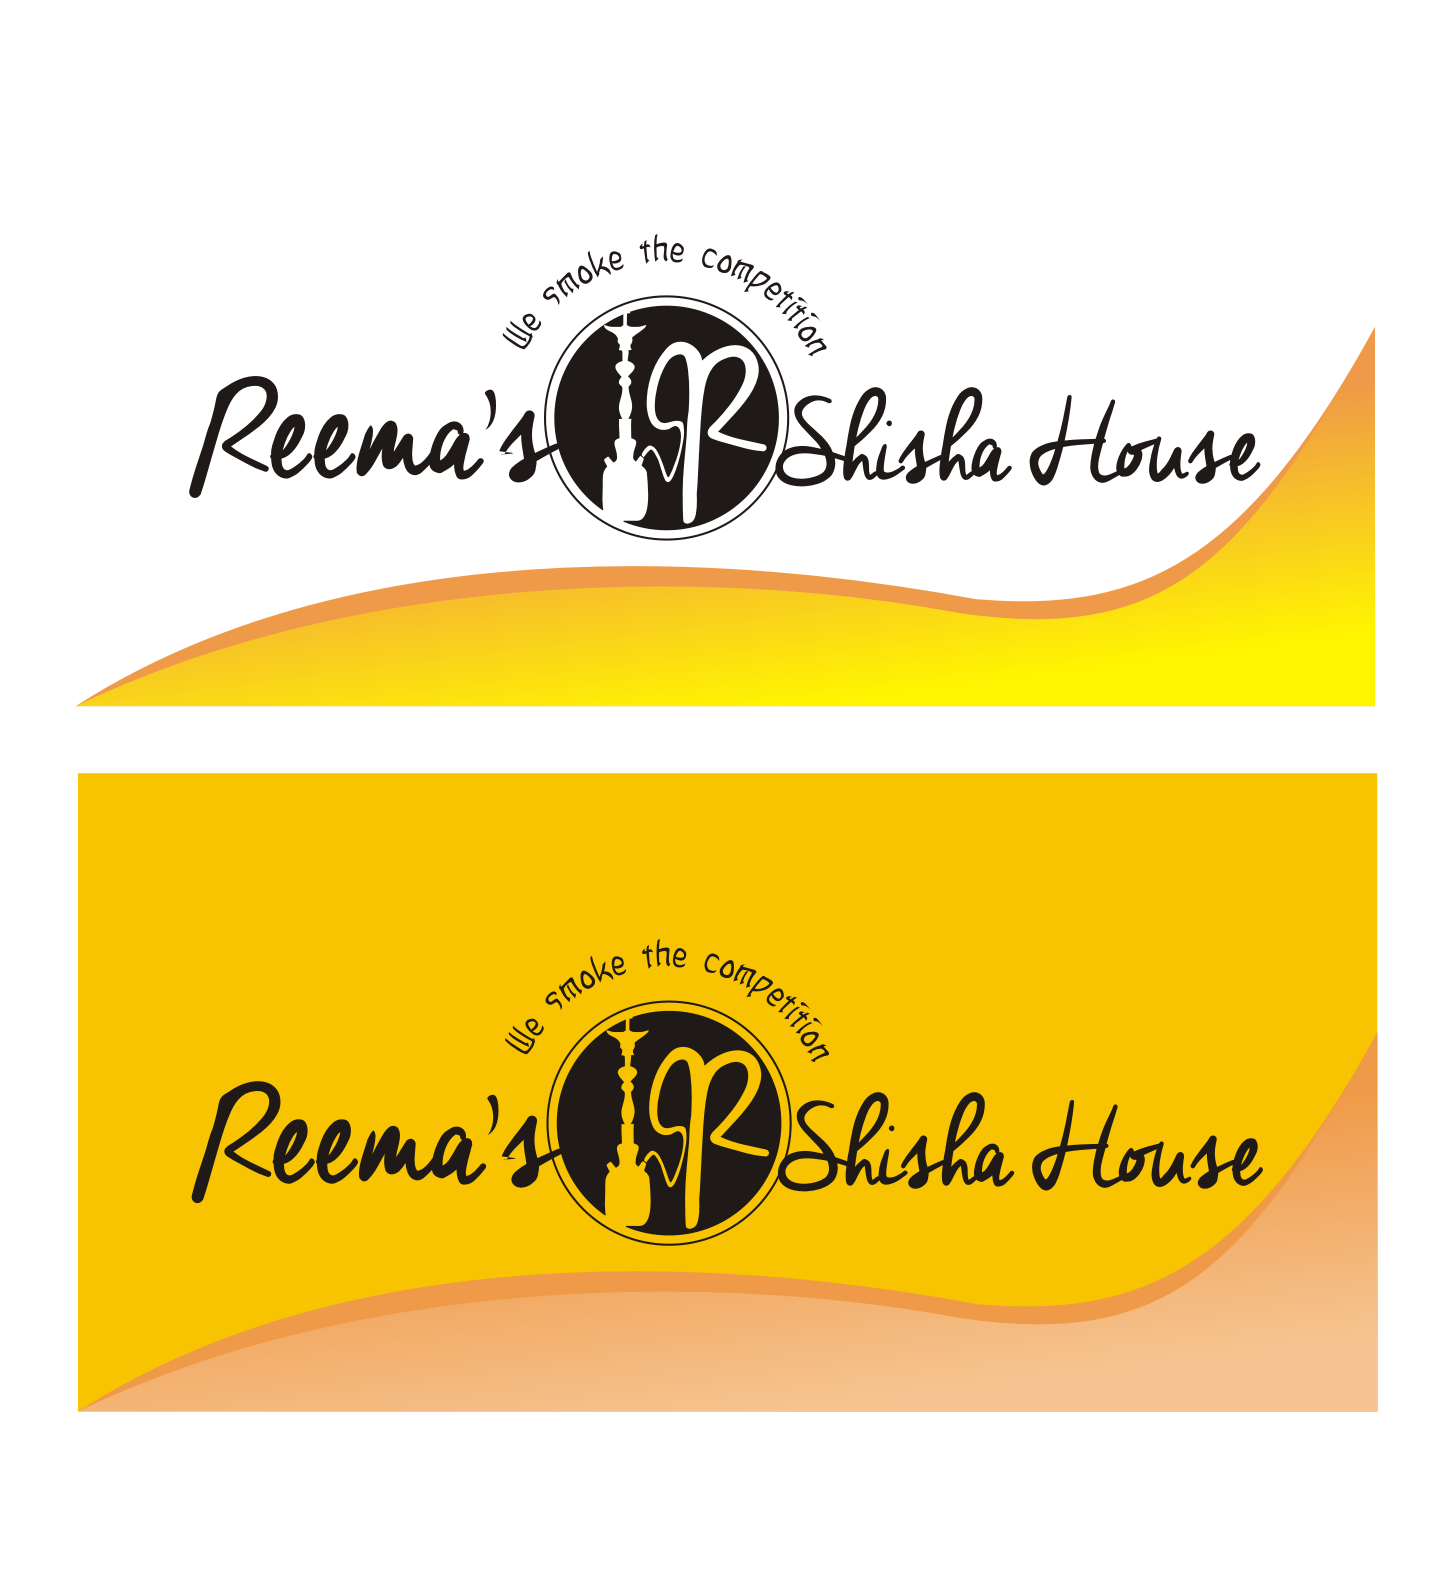 Logo Design by Nthus Nthis - Entry No. 12 in the Logo Design Contest Captivating Logo Design for Reema's Shisha House.